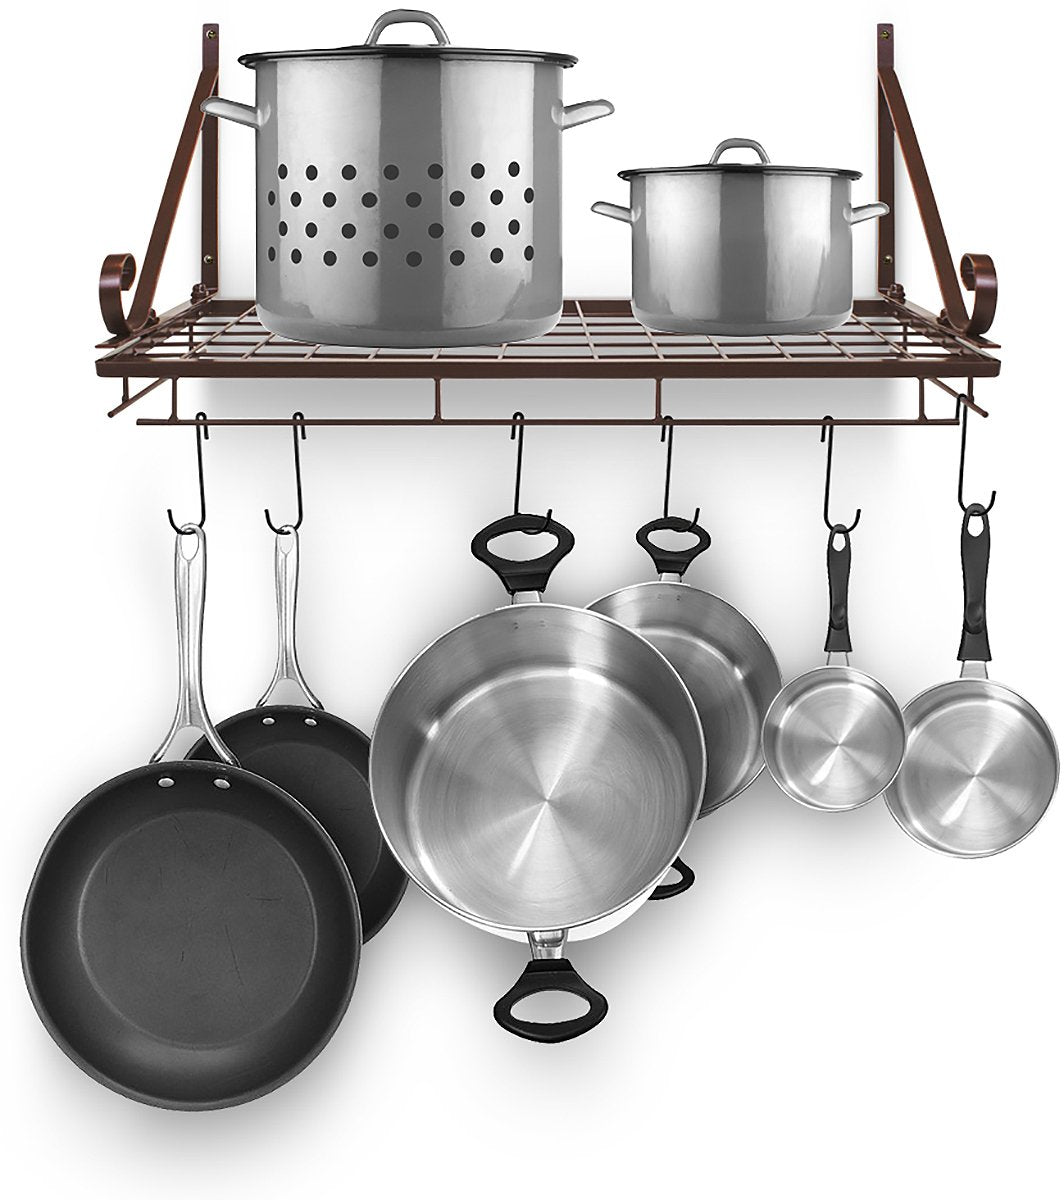 Sorbus Pots and Pan Rack — Decorative Wall Mounted Storage Hanging Rack — Multipurpose Wrought-Iron shelf Organizer for Kitchen Cookware, Utensils, Pans, Books, Bathroom (Wall Rack - Bronze)